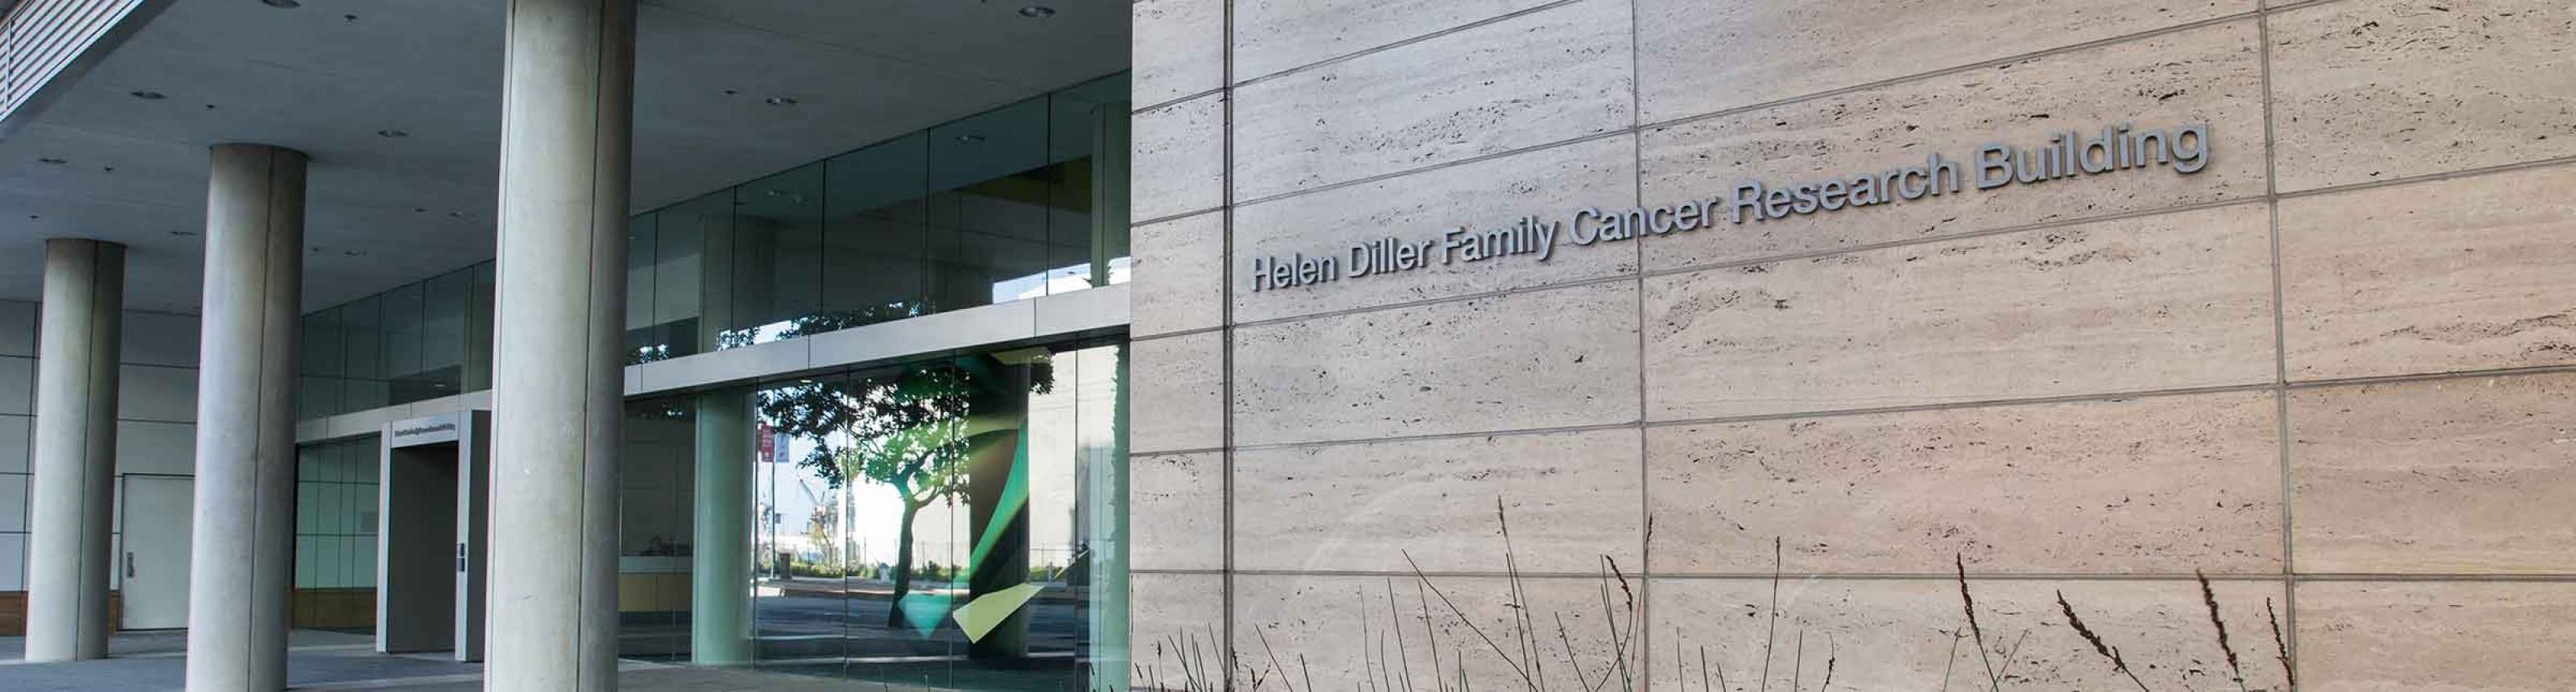 Helen Diller Family Cancer Research building